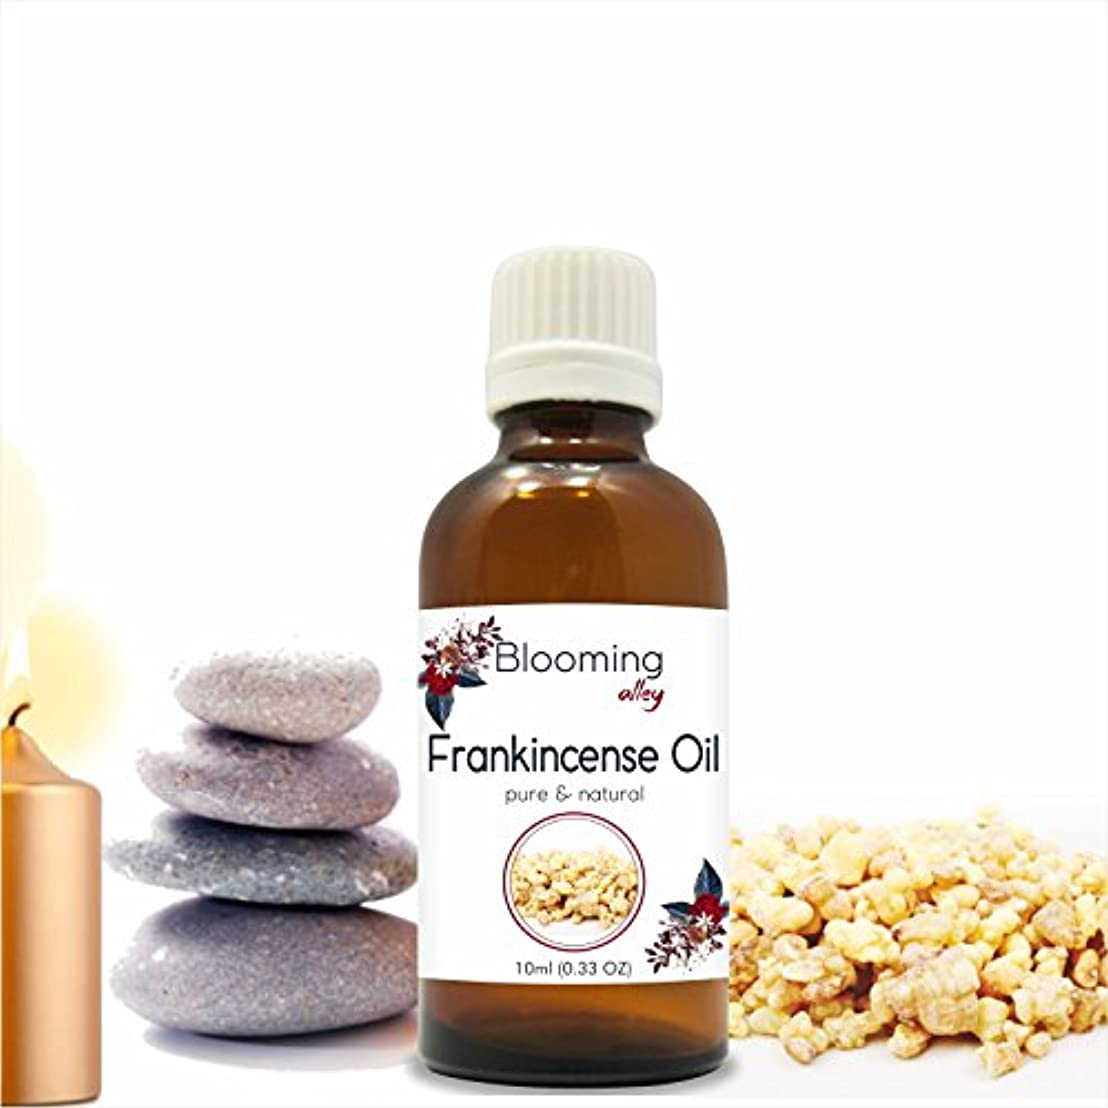 洞察力のある記念碑的な程度Frankincense Oil (Boswellia Carteri) Essential Oil 10 ml or 0.33 Fl Oz by Blooming Alley